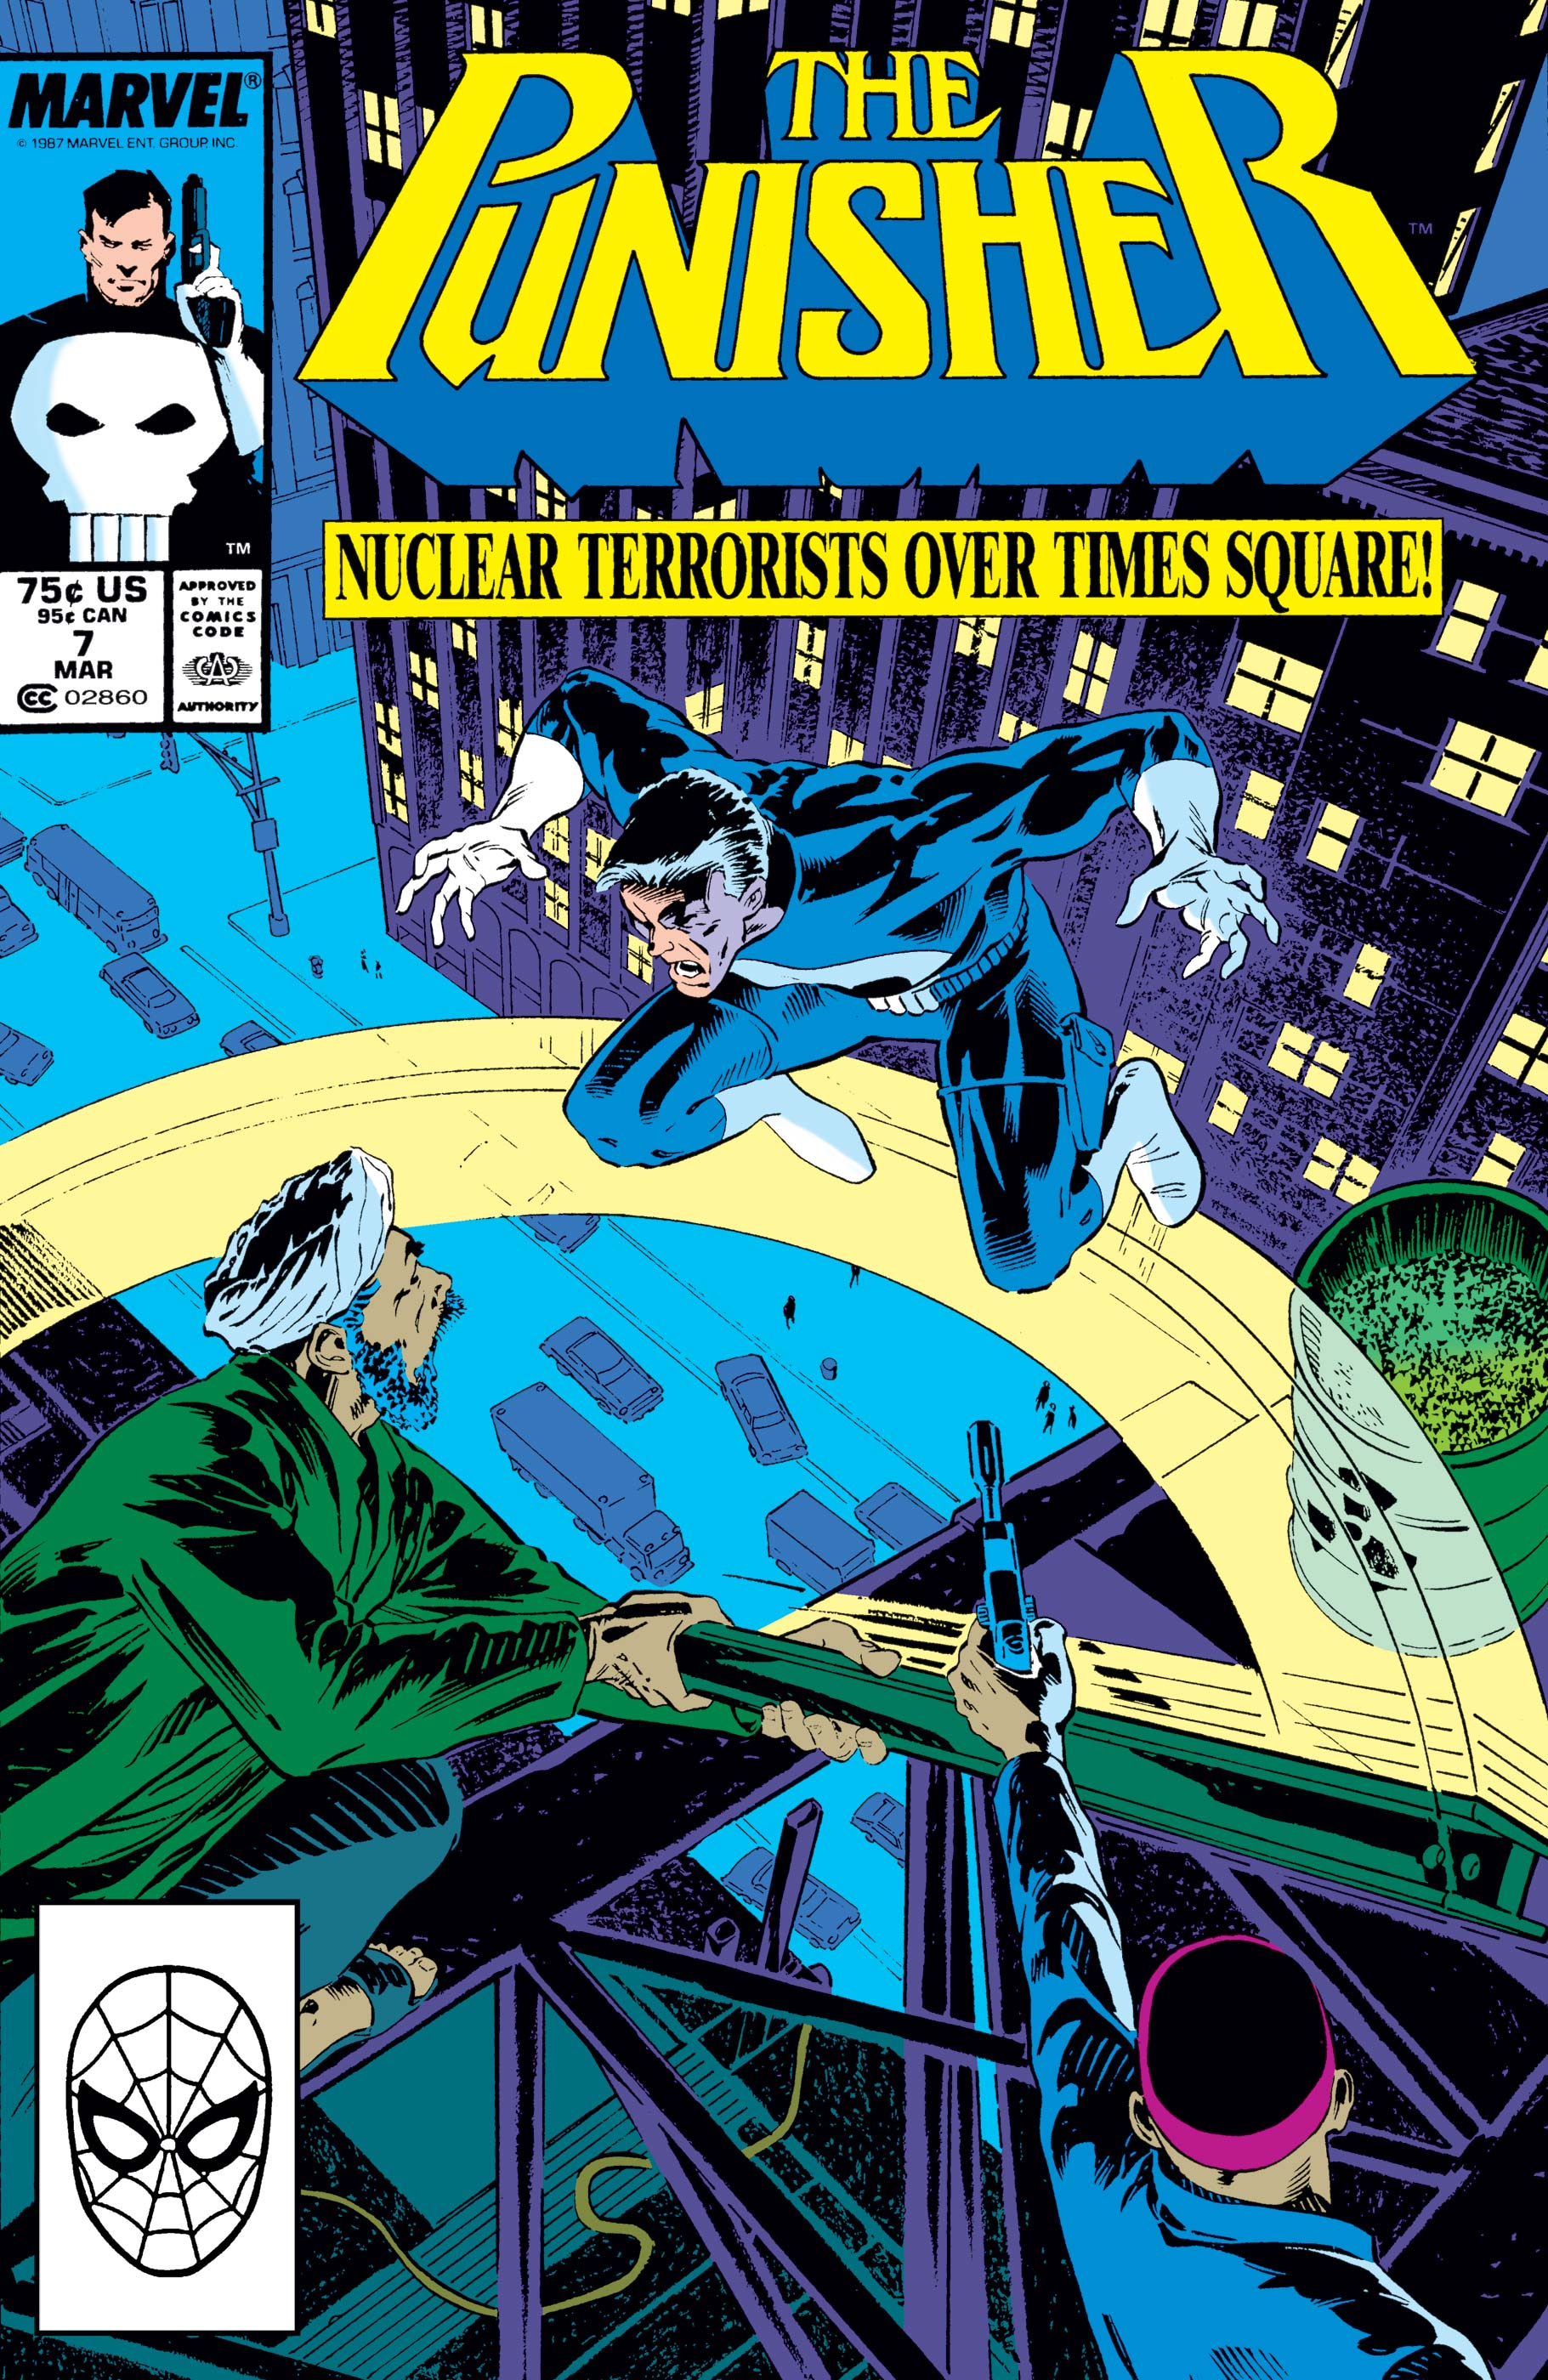 The Punisher (1987) #7